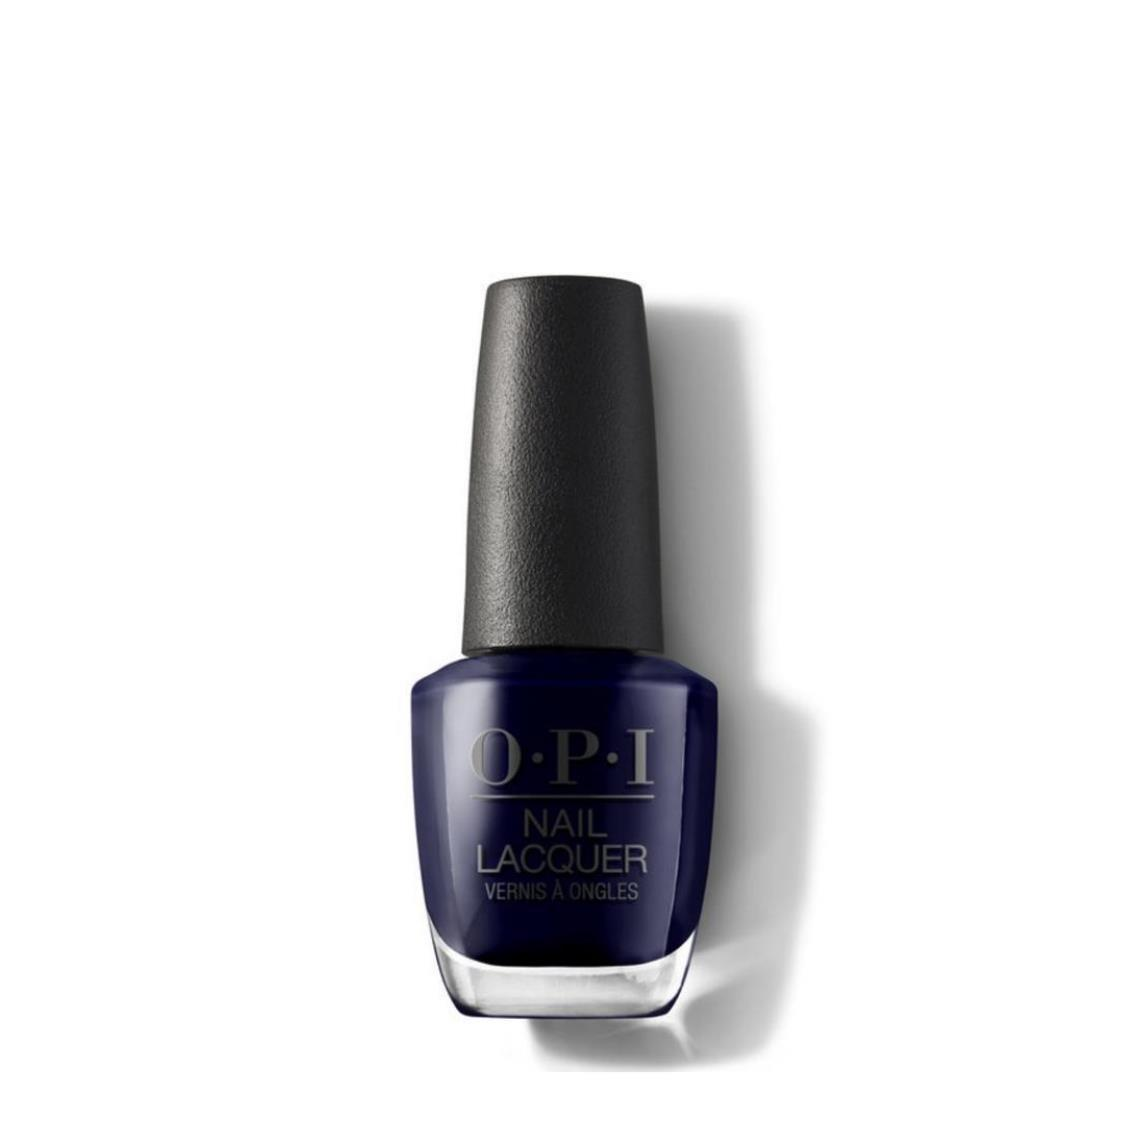 Opi Holiday Collection 2018 Nail Lacquer March in Uniform 15ml